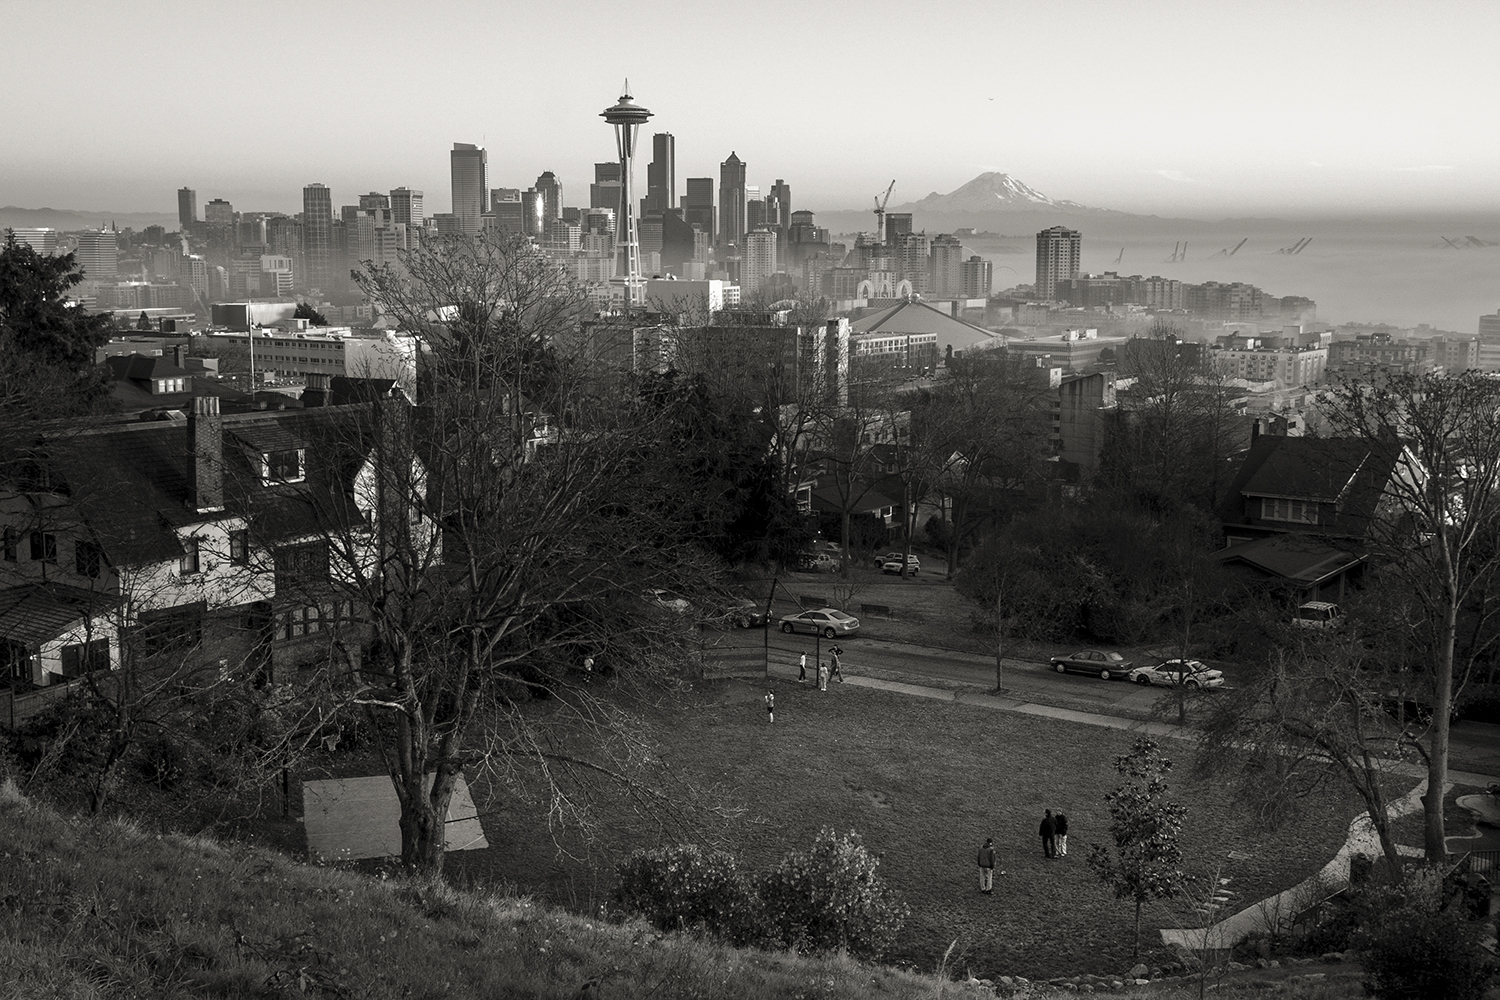 View from Kerry Park  , Kerry Park, Seattle, WA, USA    47.629439, -122.360102   雾散西雅图  ,美国华盛顿西雅图    47.629439, -122.360102